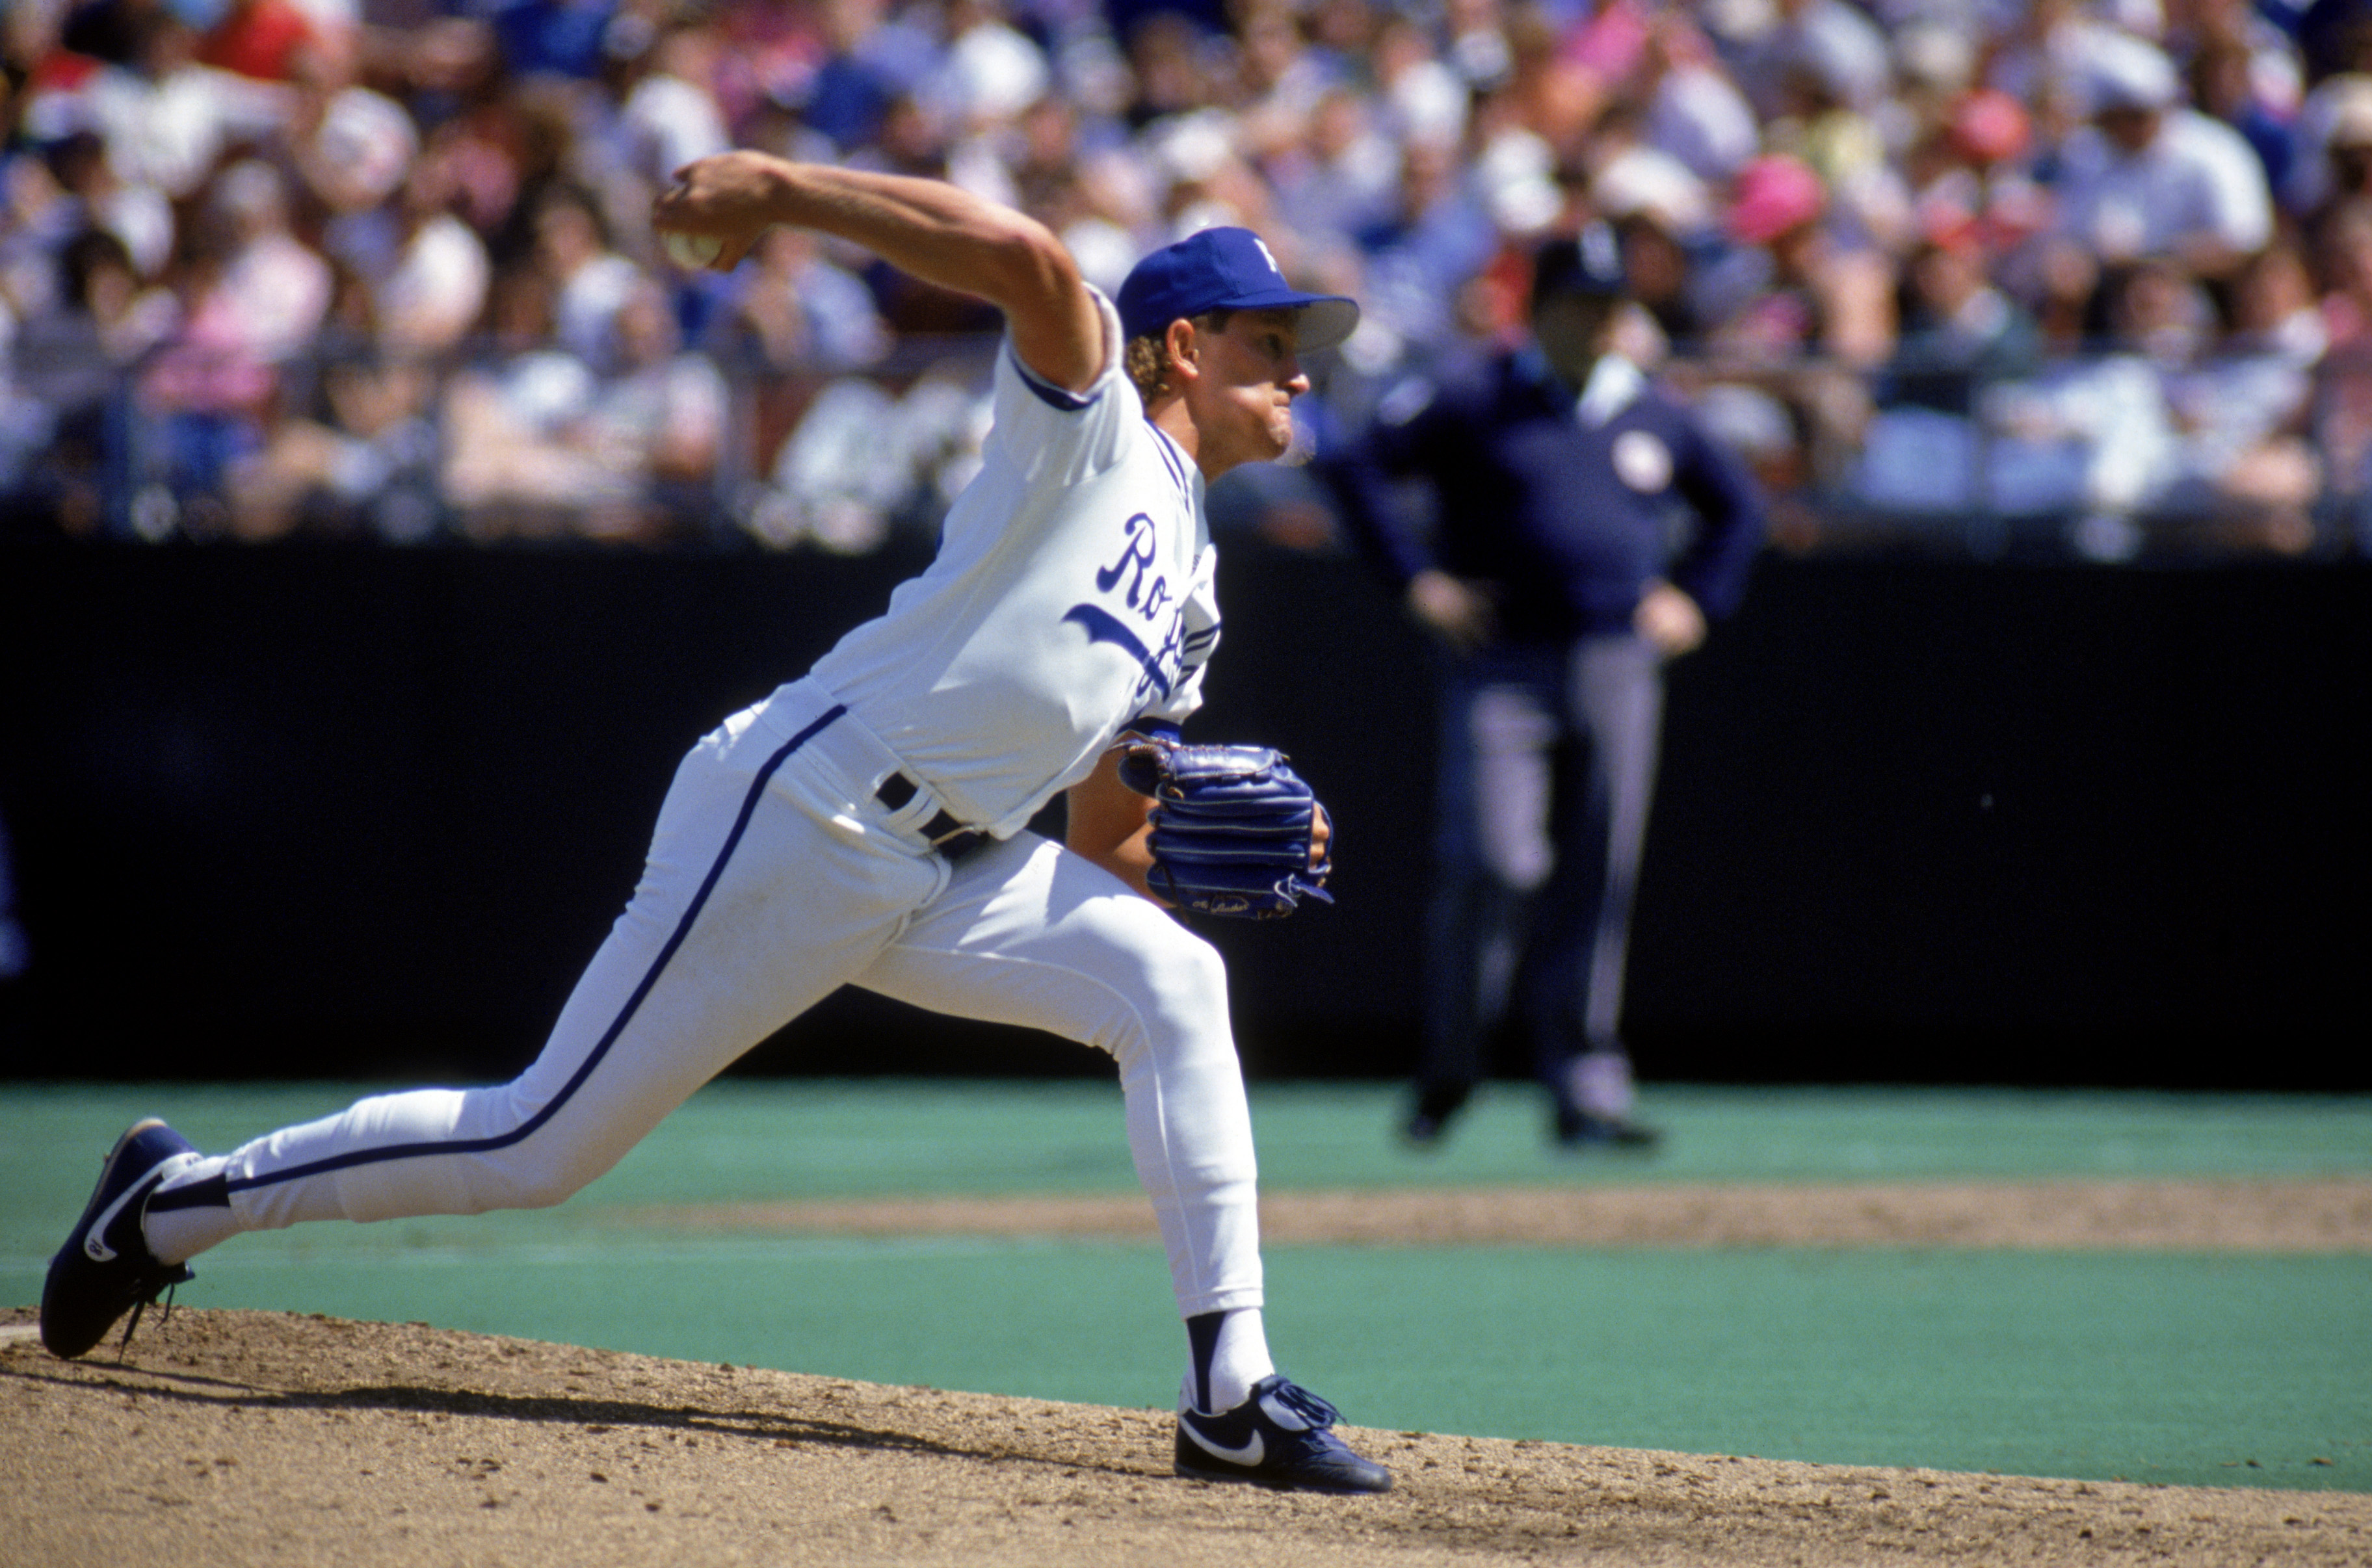 KANSAS CITY, MO - 1990:  Bret Saberhagen #31 of the Kansas City Royals winds up for a pitch during a game in 1990 at Royals Stadium in Kansas City, Missouri.  (Photo by Jonathan Daniel/Getty Images)